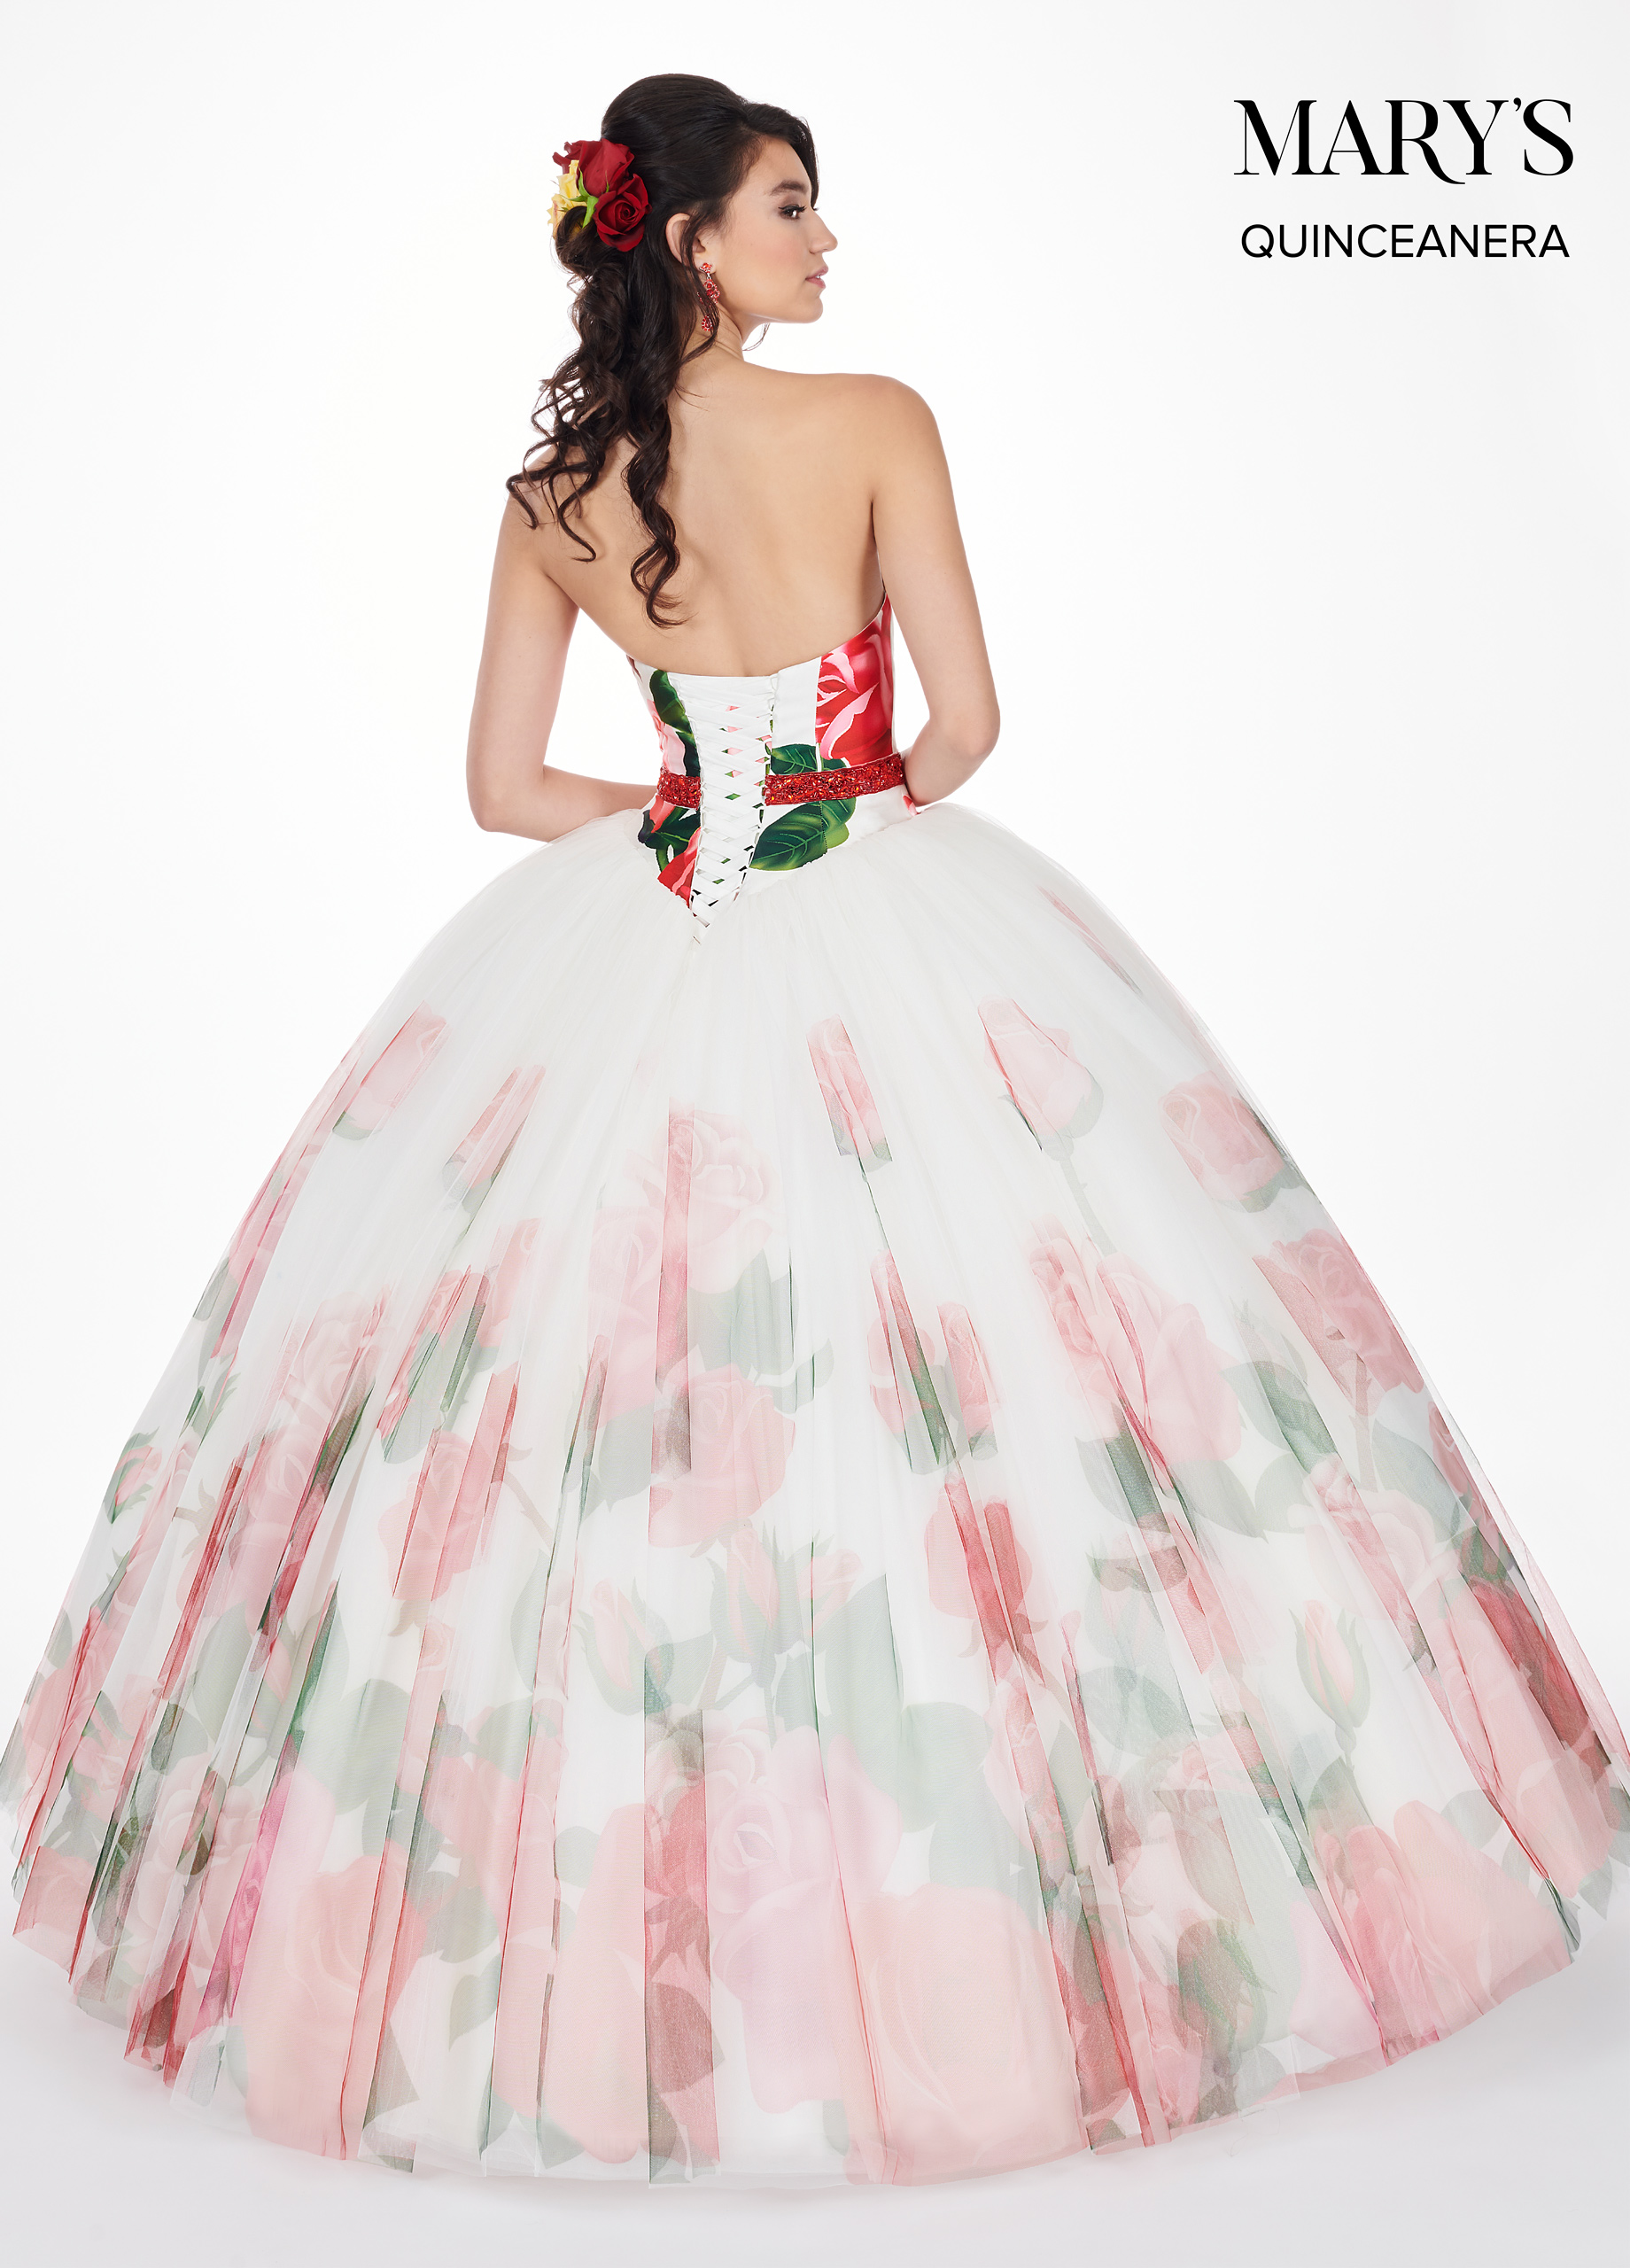 Marys Quinceanera Dresses | Mary's Quinceanera | Style - MQ1030